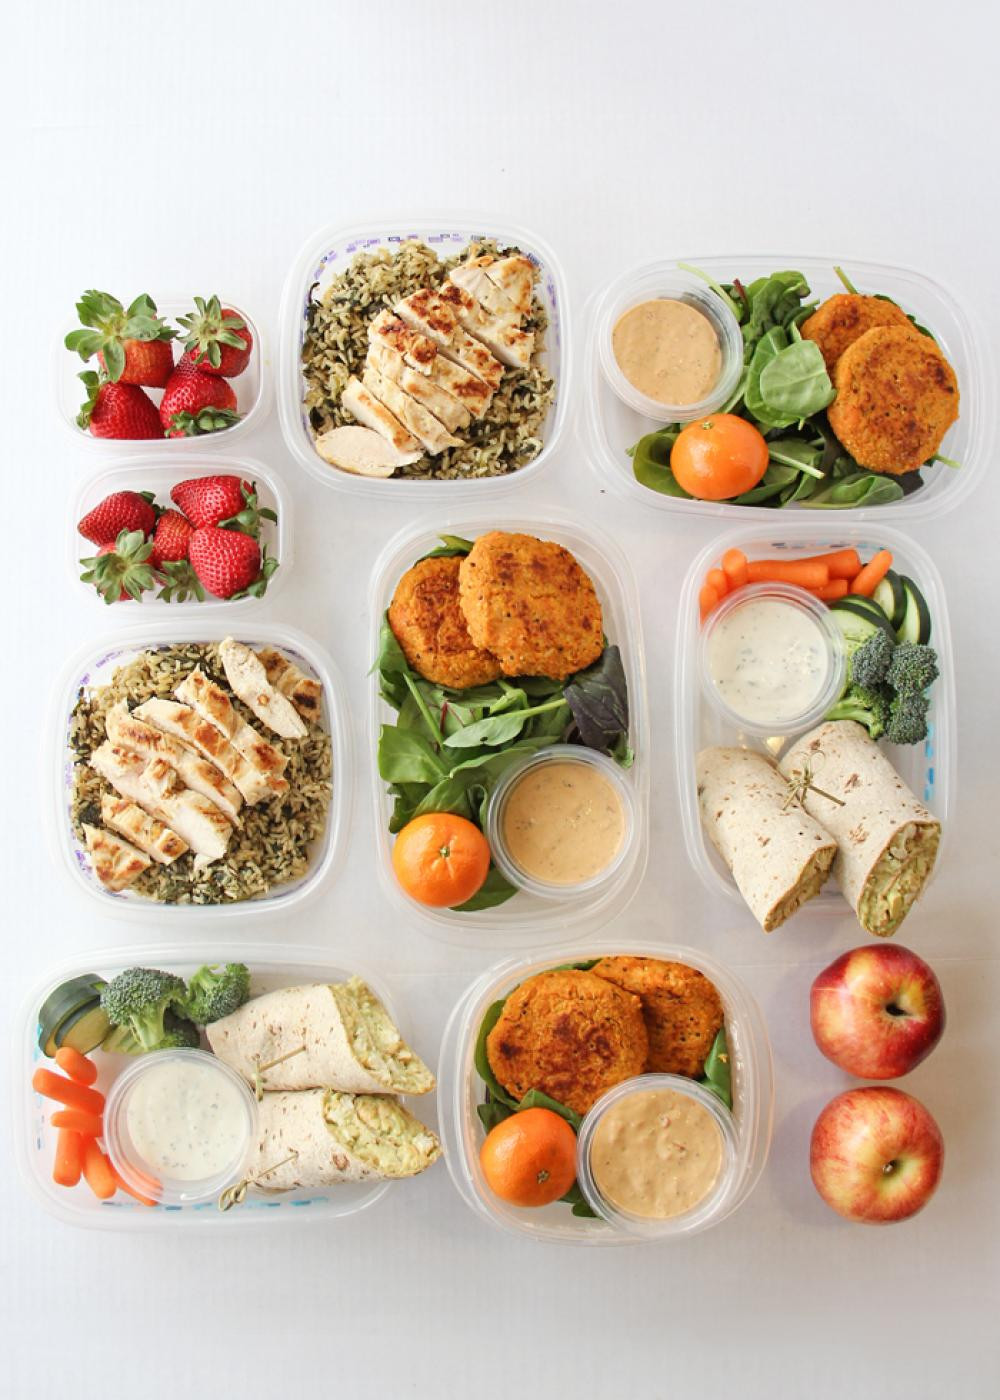 Healthy Lunches For The Week  Recipes to Prepare Seven Healthy Lunches For The Week